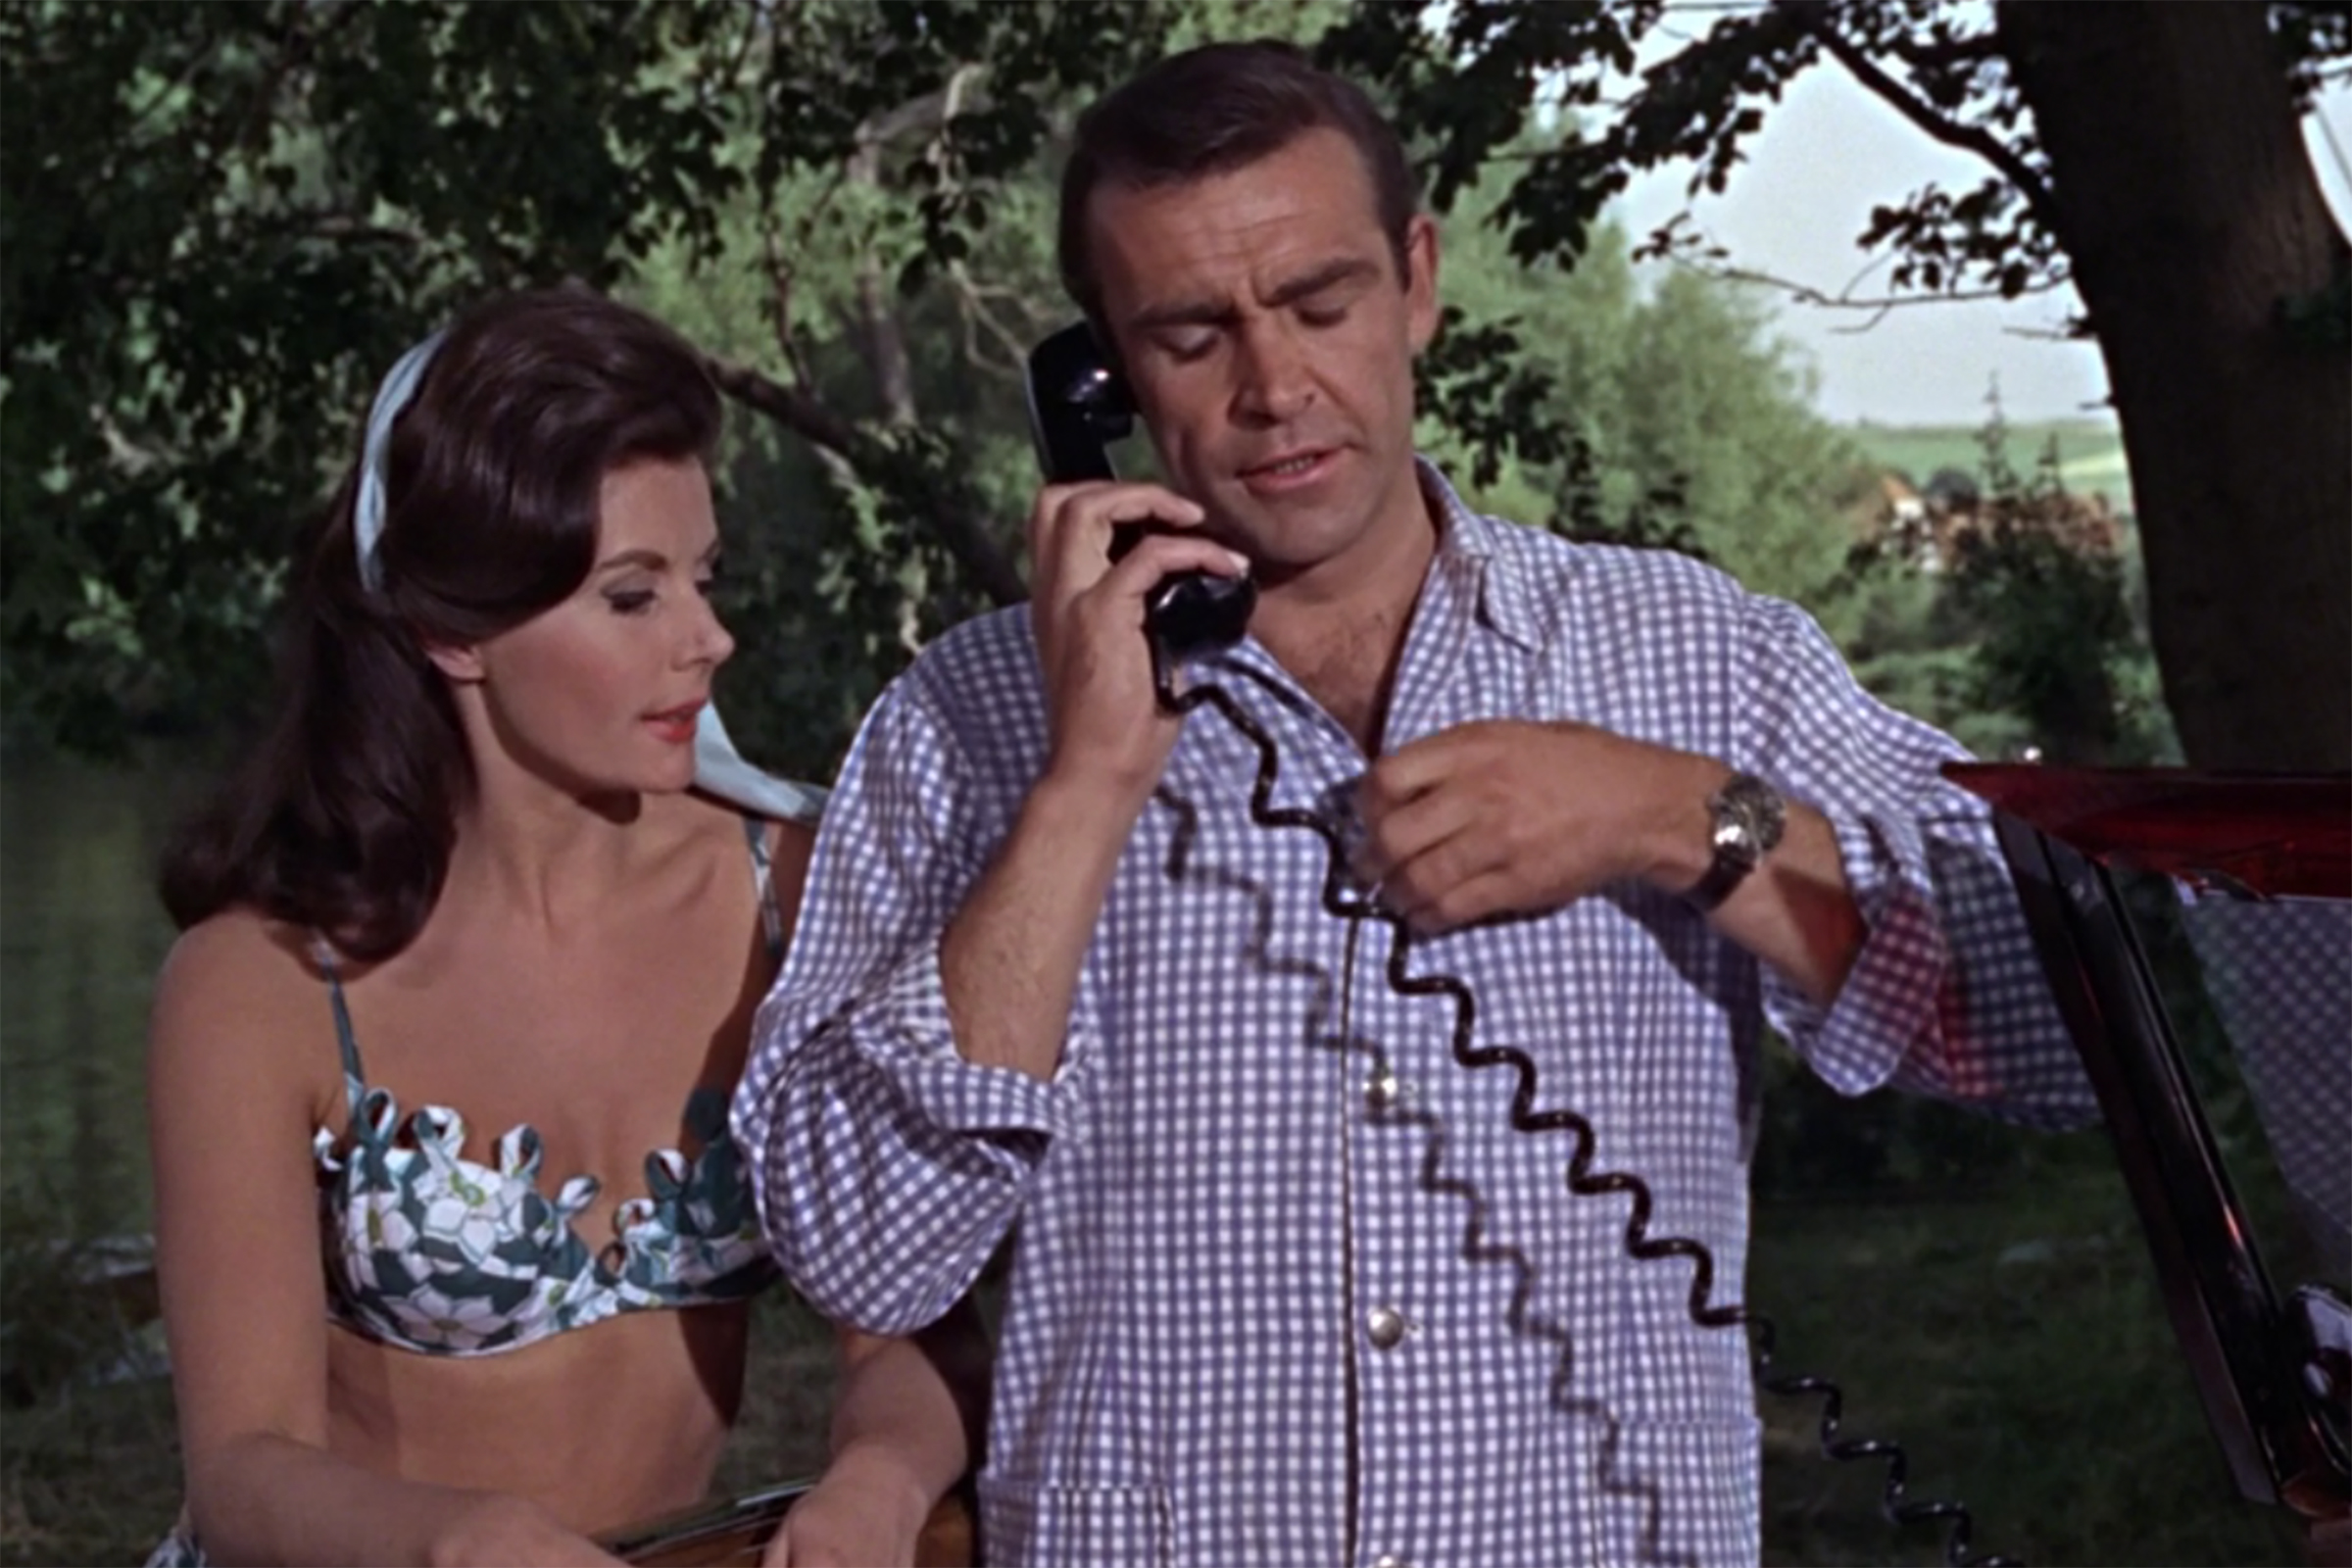 In From Russia with Love, Connery dons a purple gingham shirt.